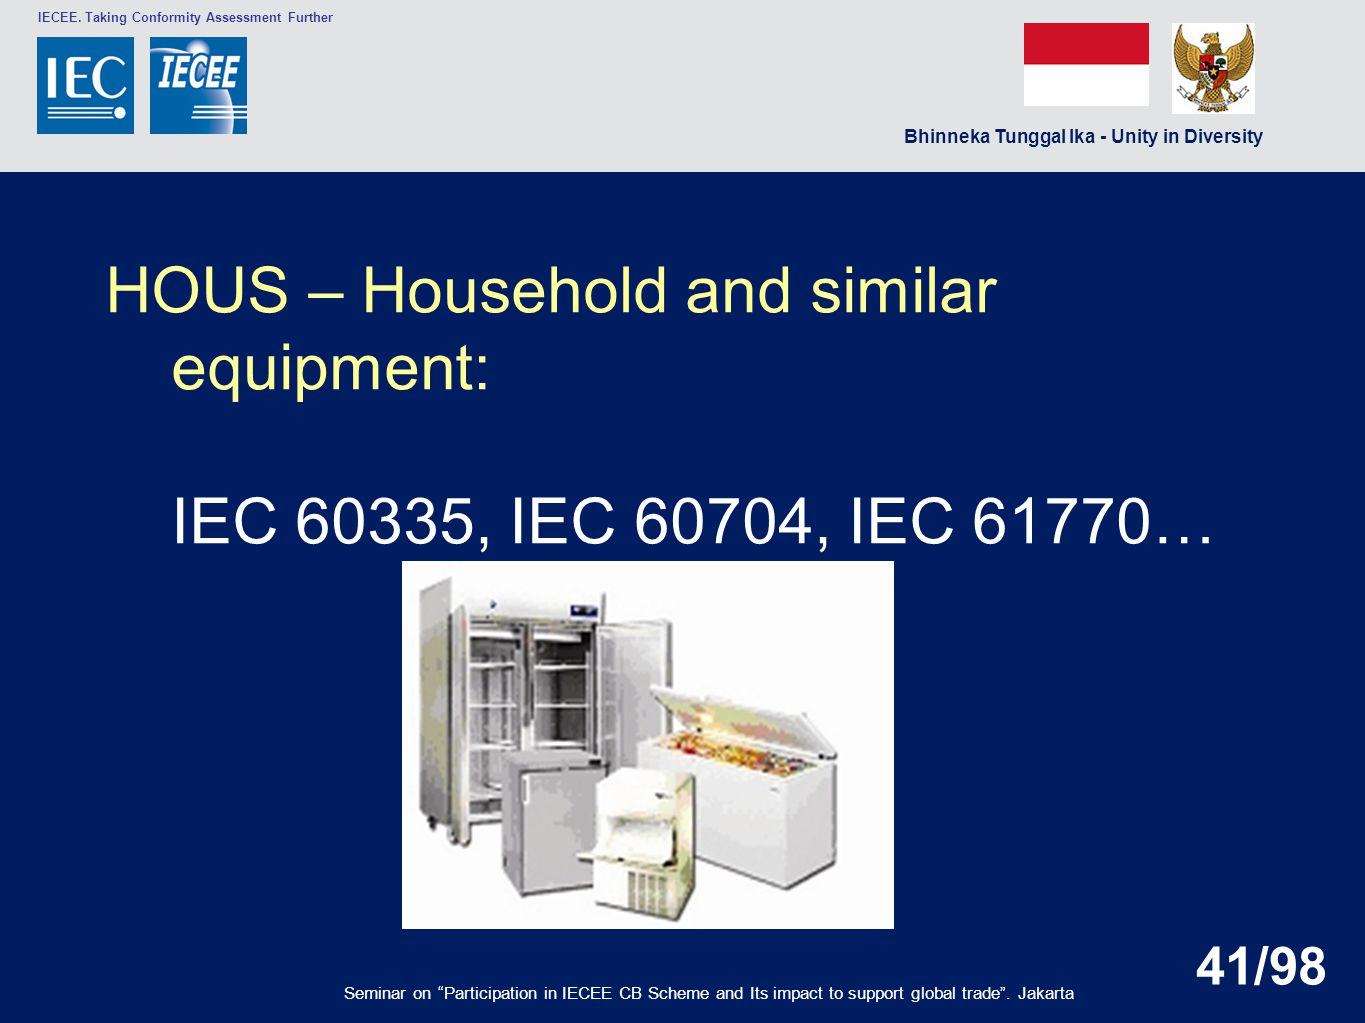 HOUS – Household and similar equipment: IEC 60335, IEC 60704, IEC 61770…